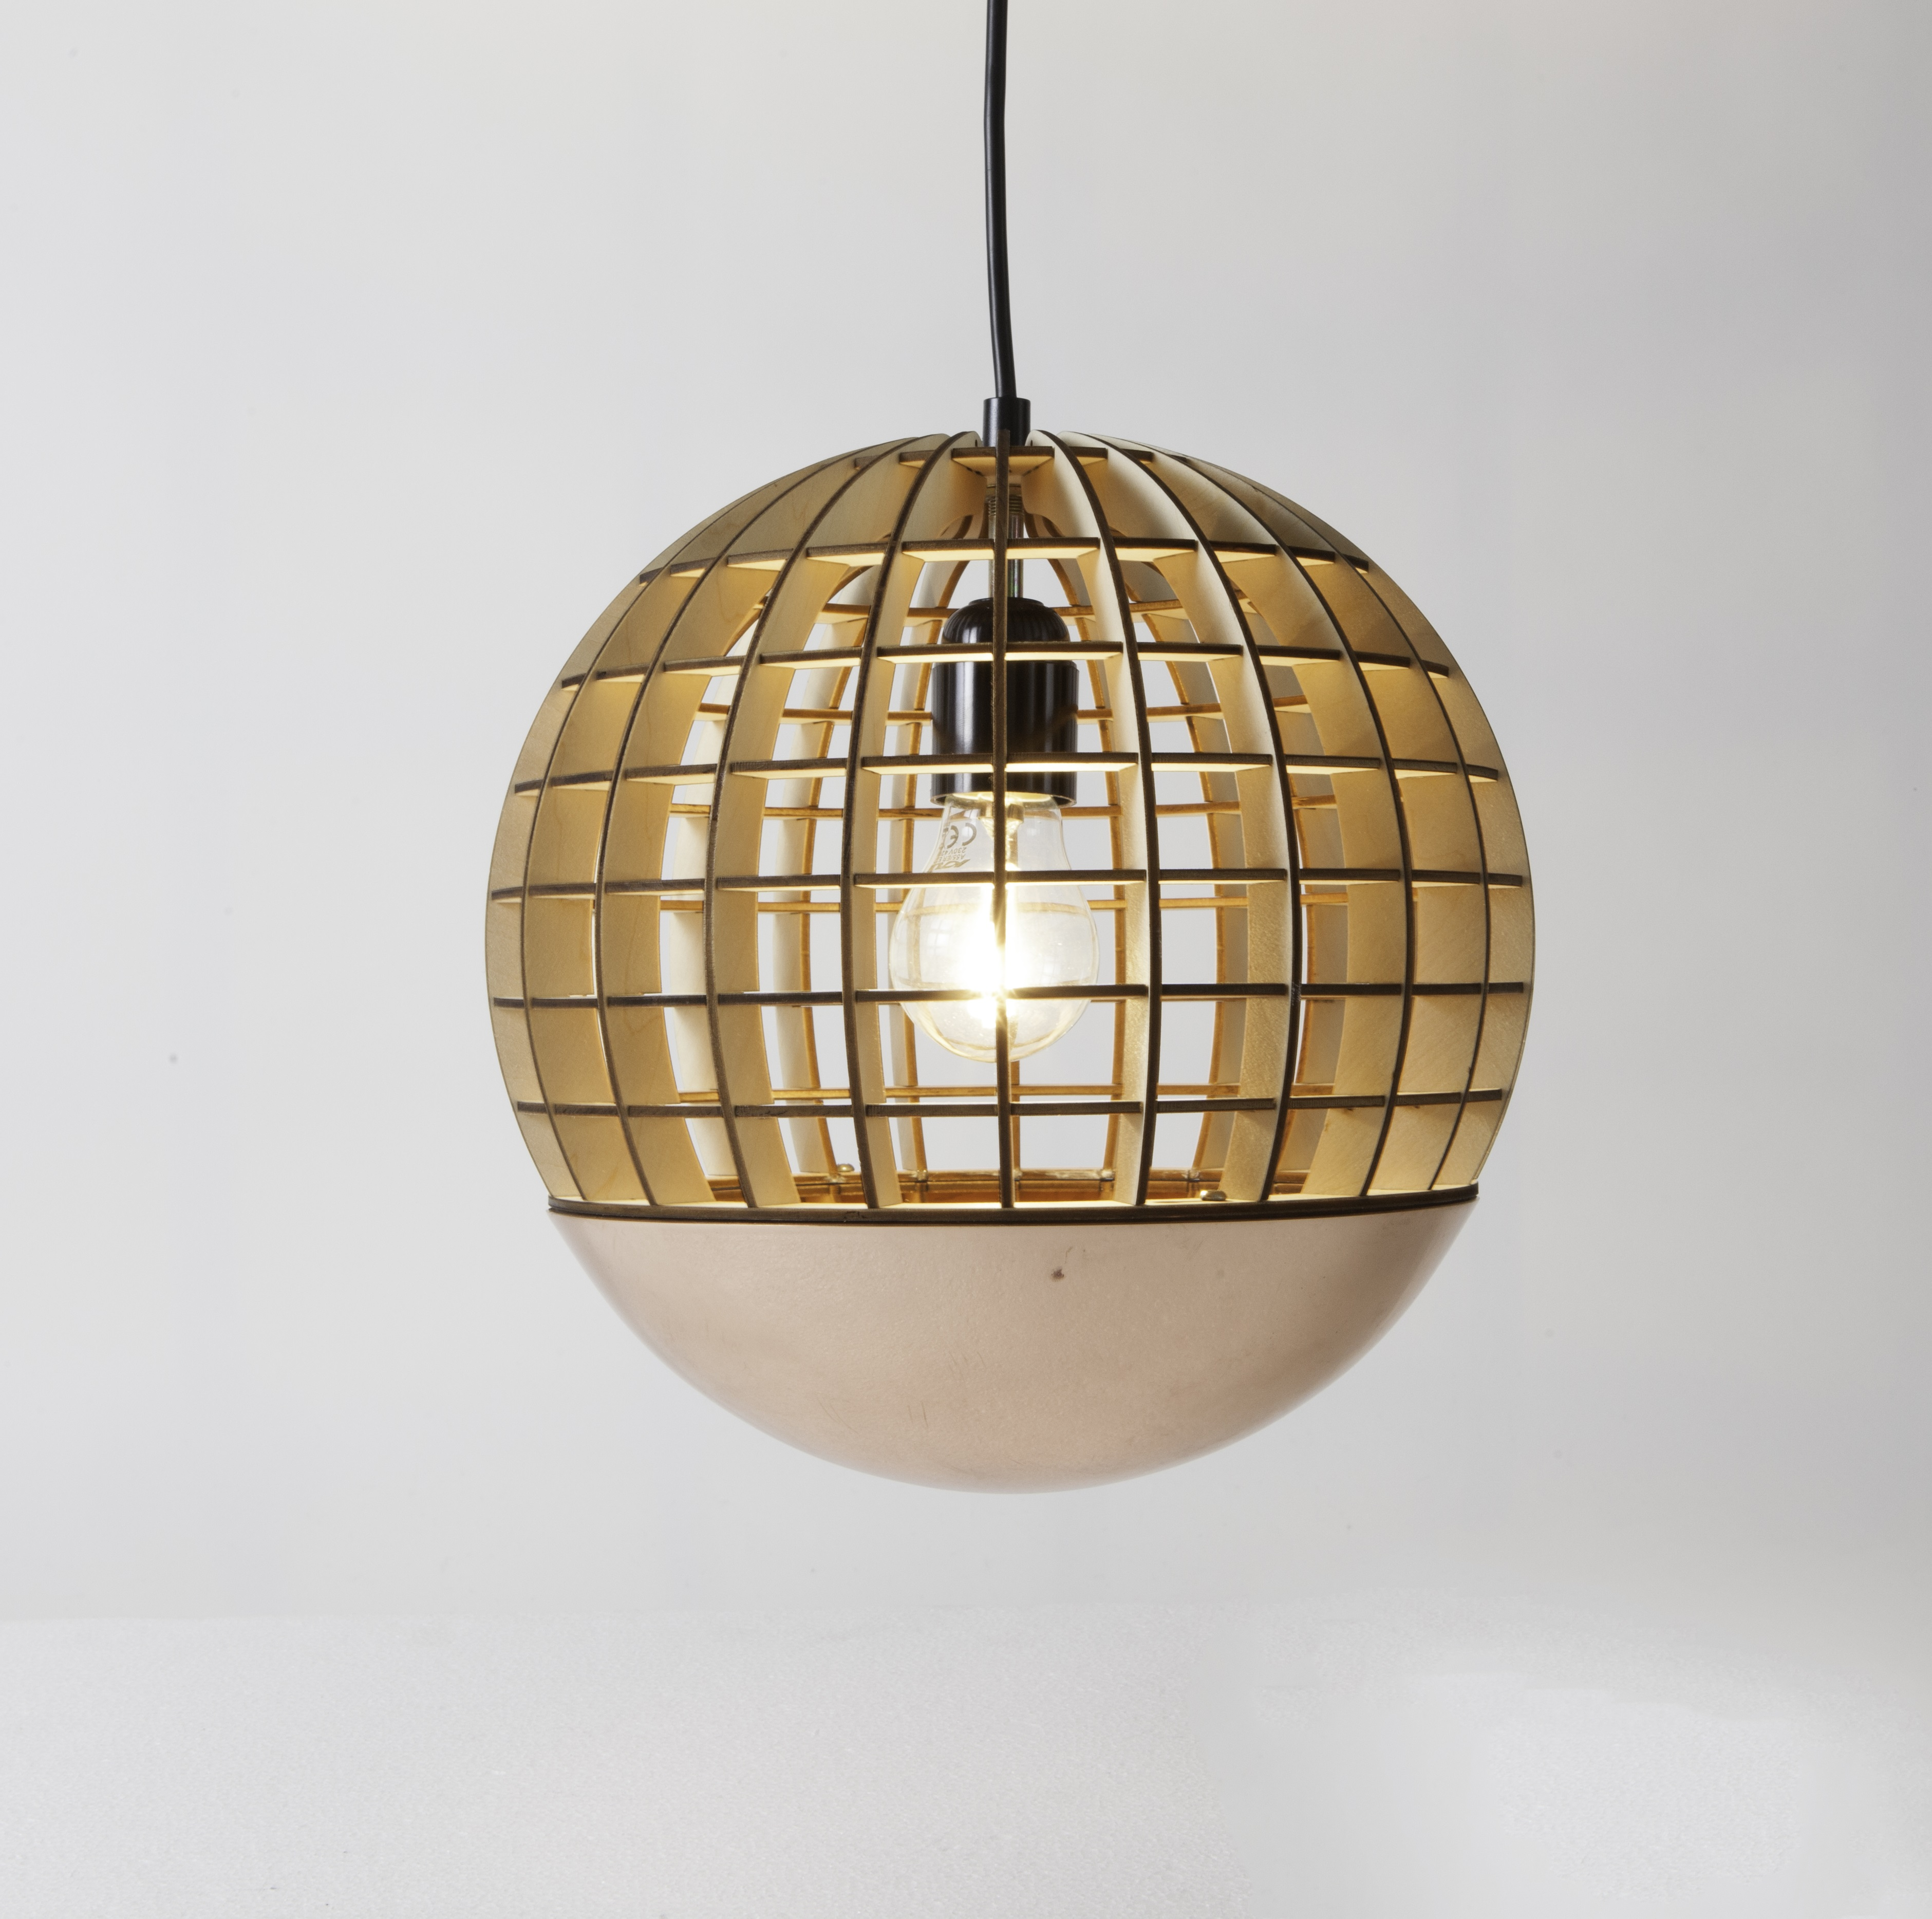 suspension globe bois cuivre 28cm massow design luminaires nedgis. Black Bedroom Furniture Sets. Home Design Ideas